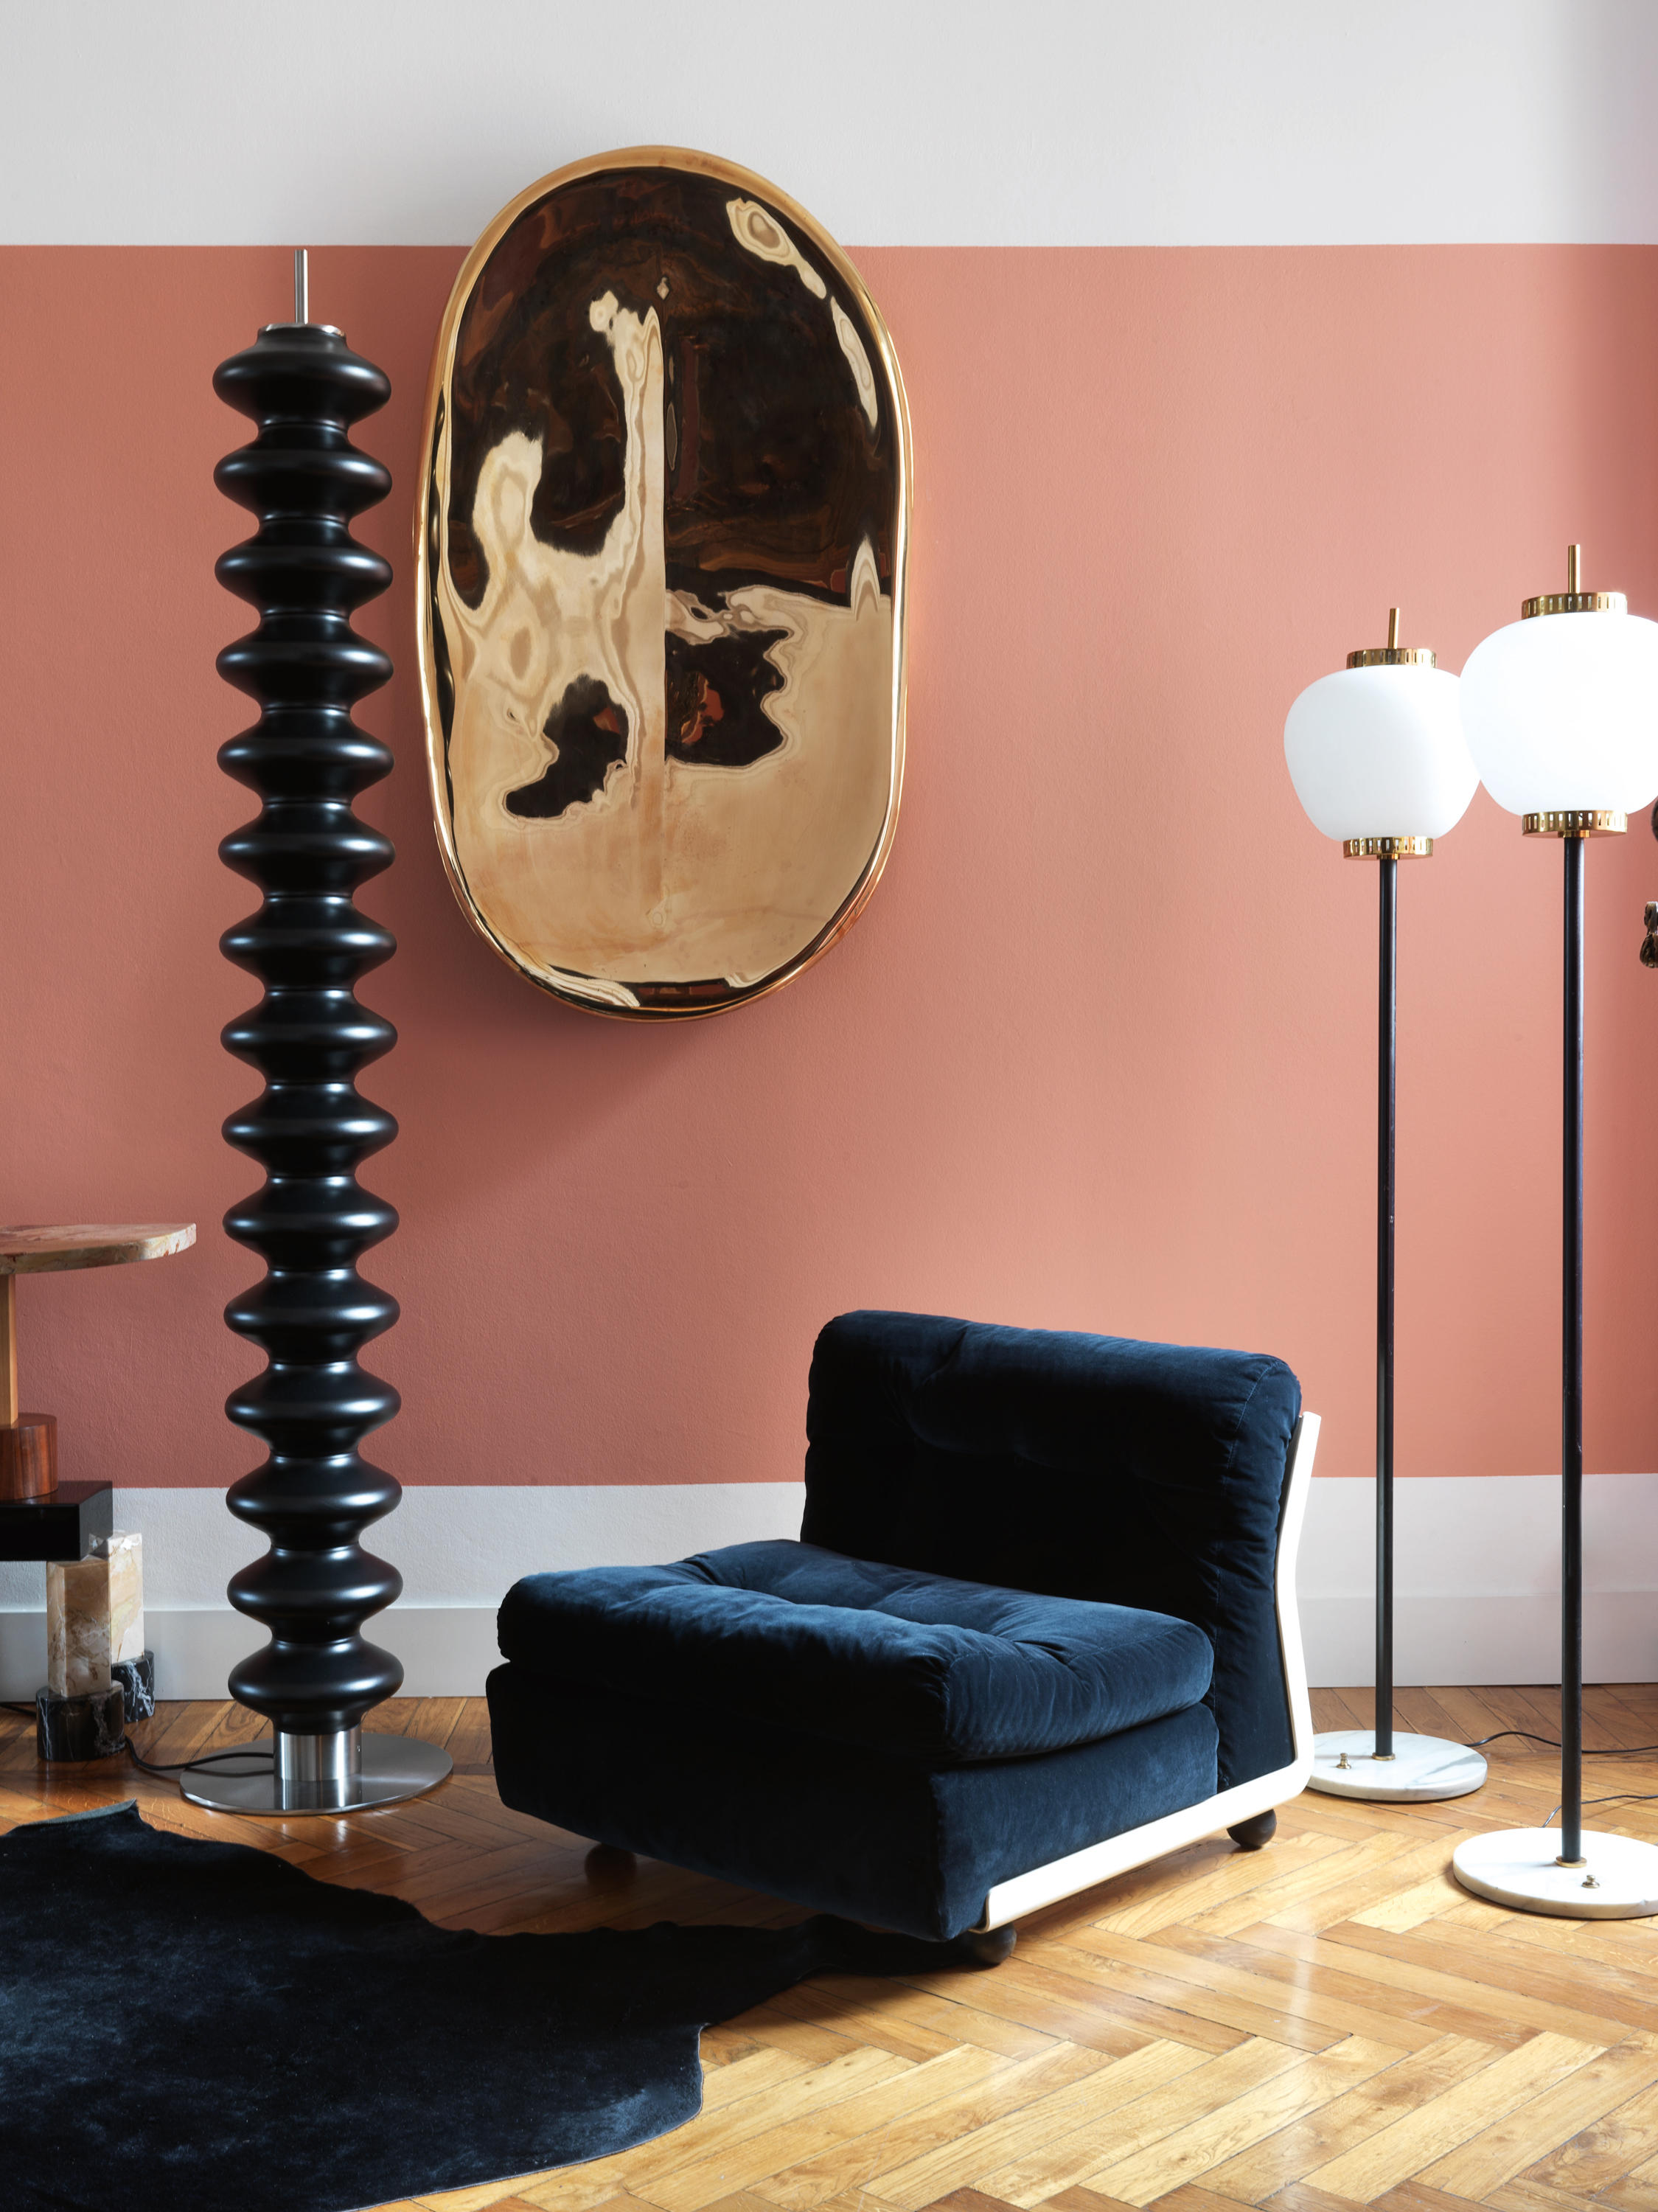 MILANO FREE STANDING - Radiators from TUBES | Architonic